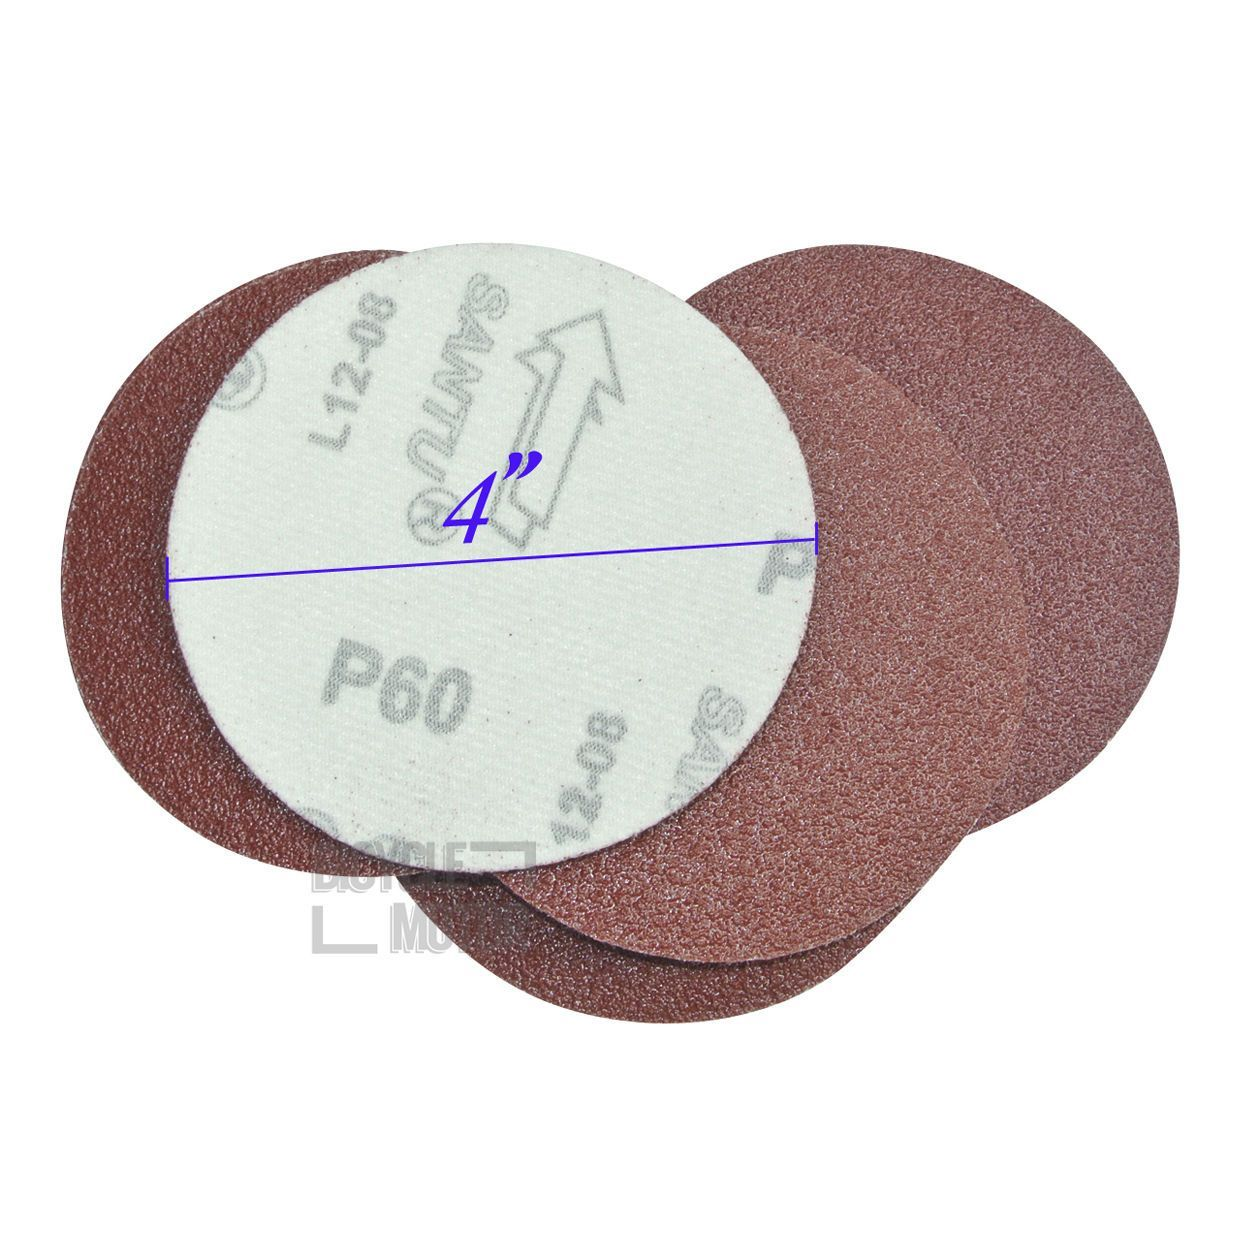 10 Pcs 4 60 Grit Sand Disc Paper Random Orbit Hook Loop Sander Sanding Best Random Orbital Sander Woodworking Inspiration Laser Engraving Machine